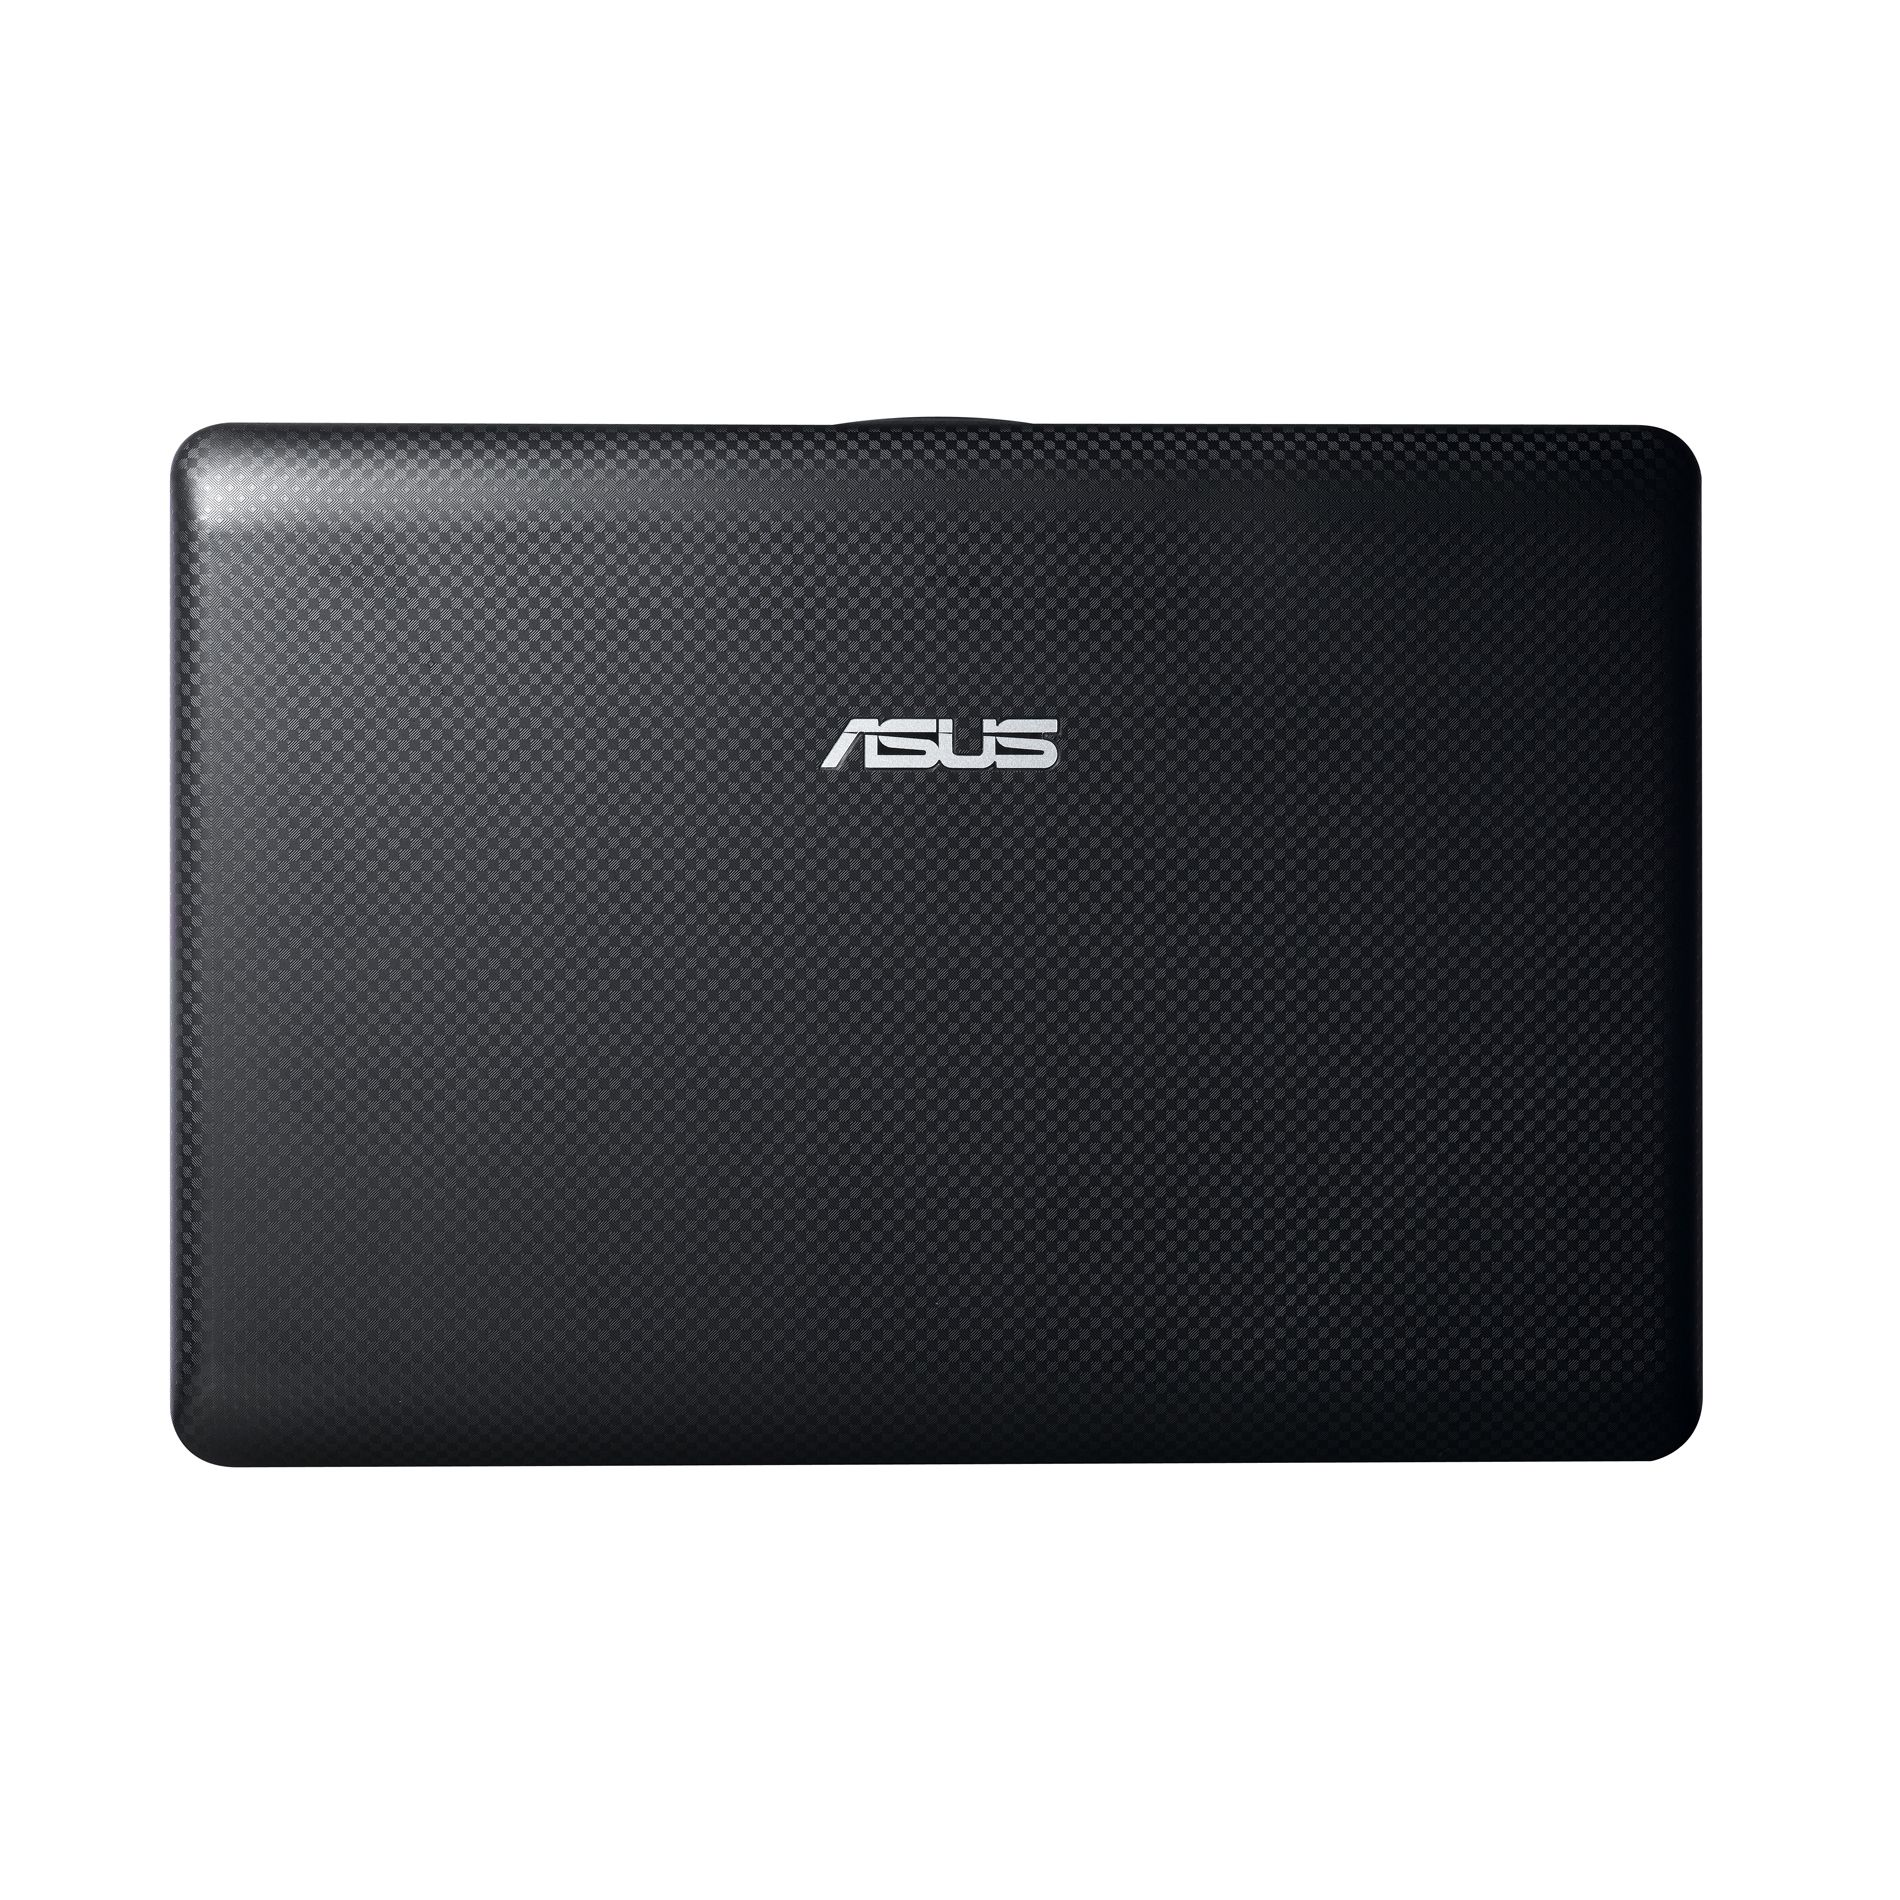 "Asus 10.1"" Netbook PC 1001PXD-EU27"